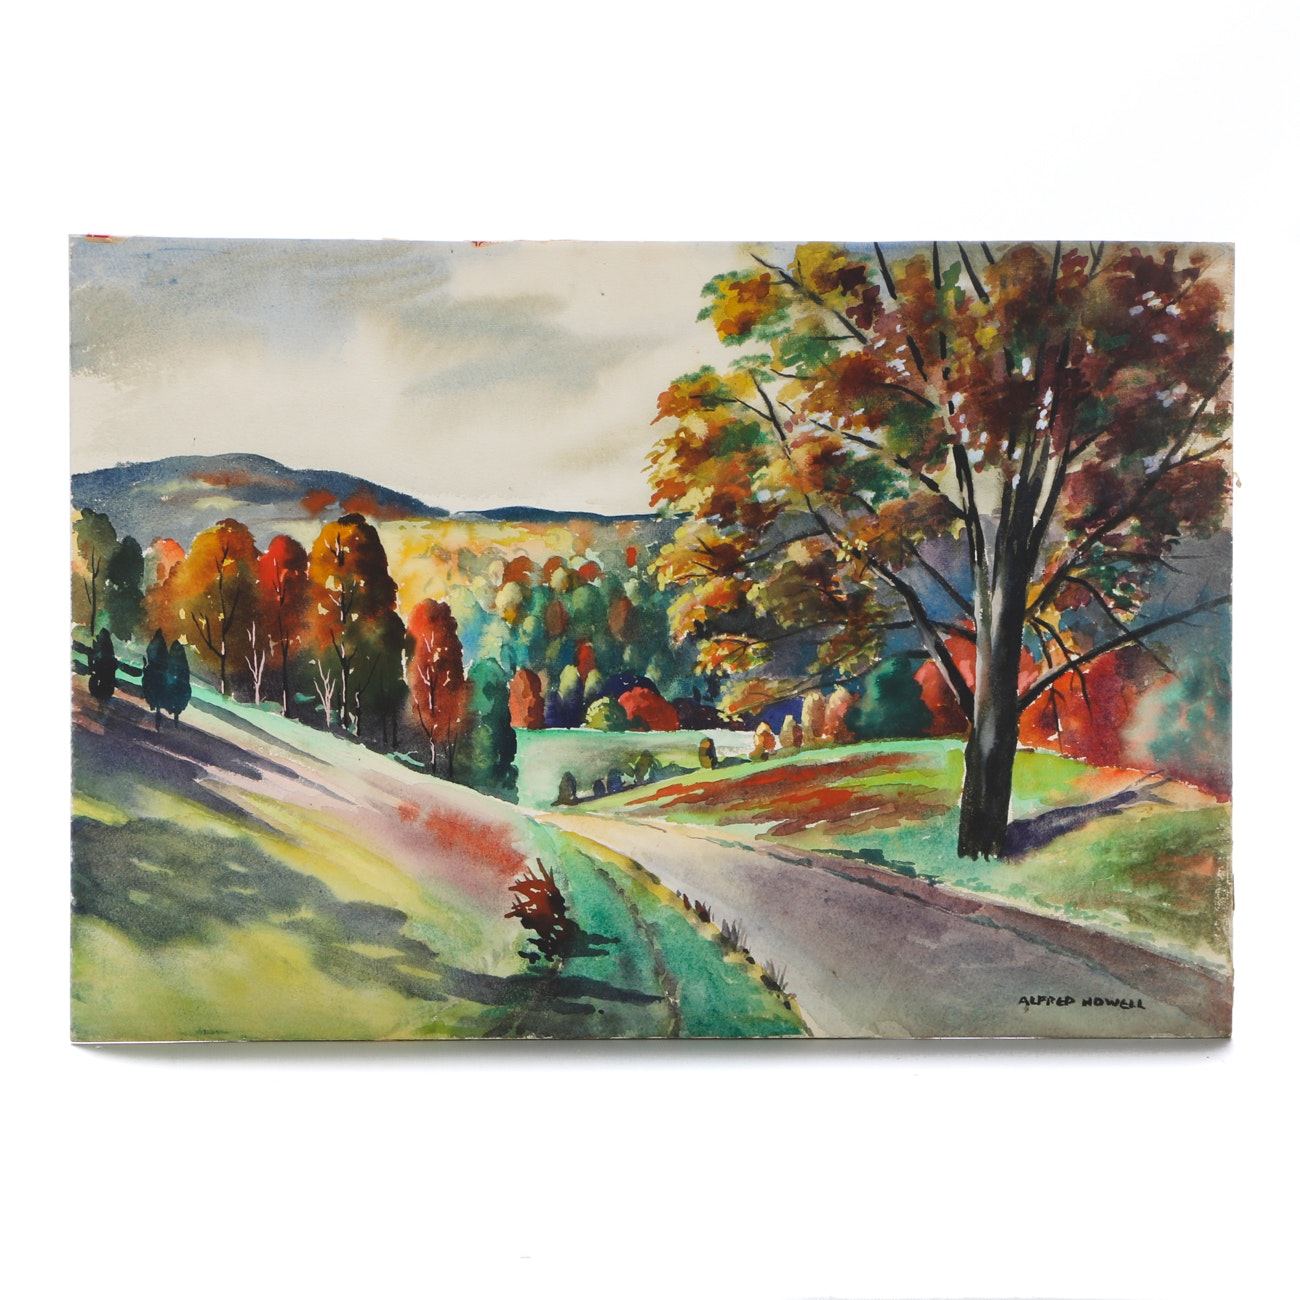 Alfred Howell Original Watercolor Landscape on Paperboard